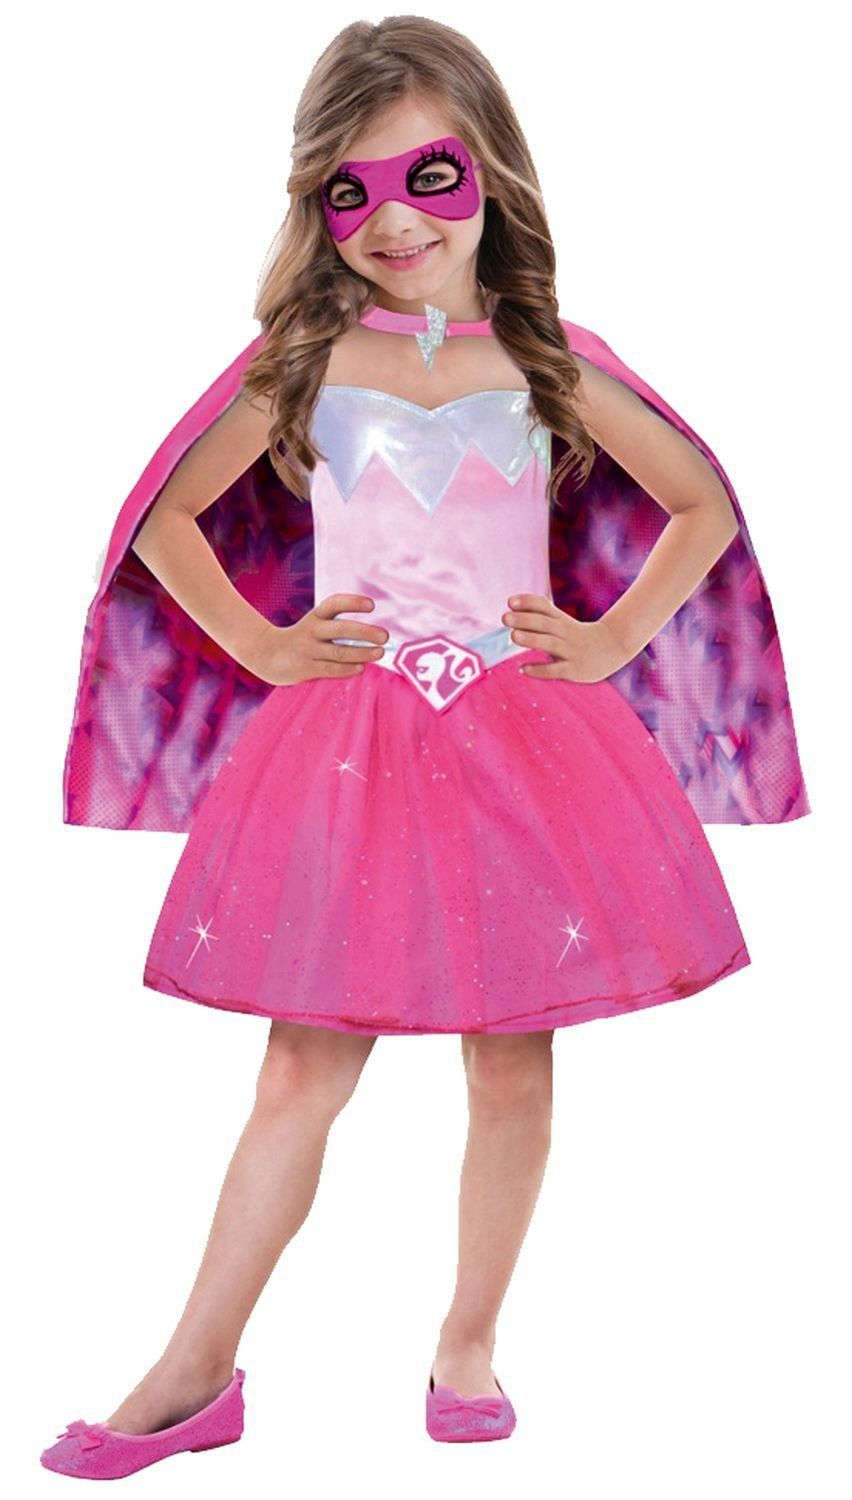 Barbie Super Power Princess Costume 8 10 Years Amazoncouk Toys Games